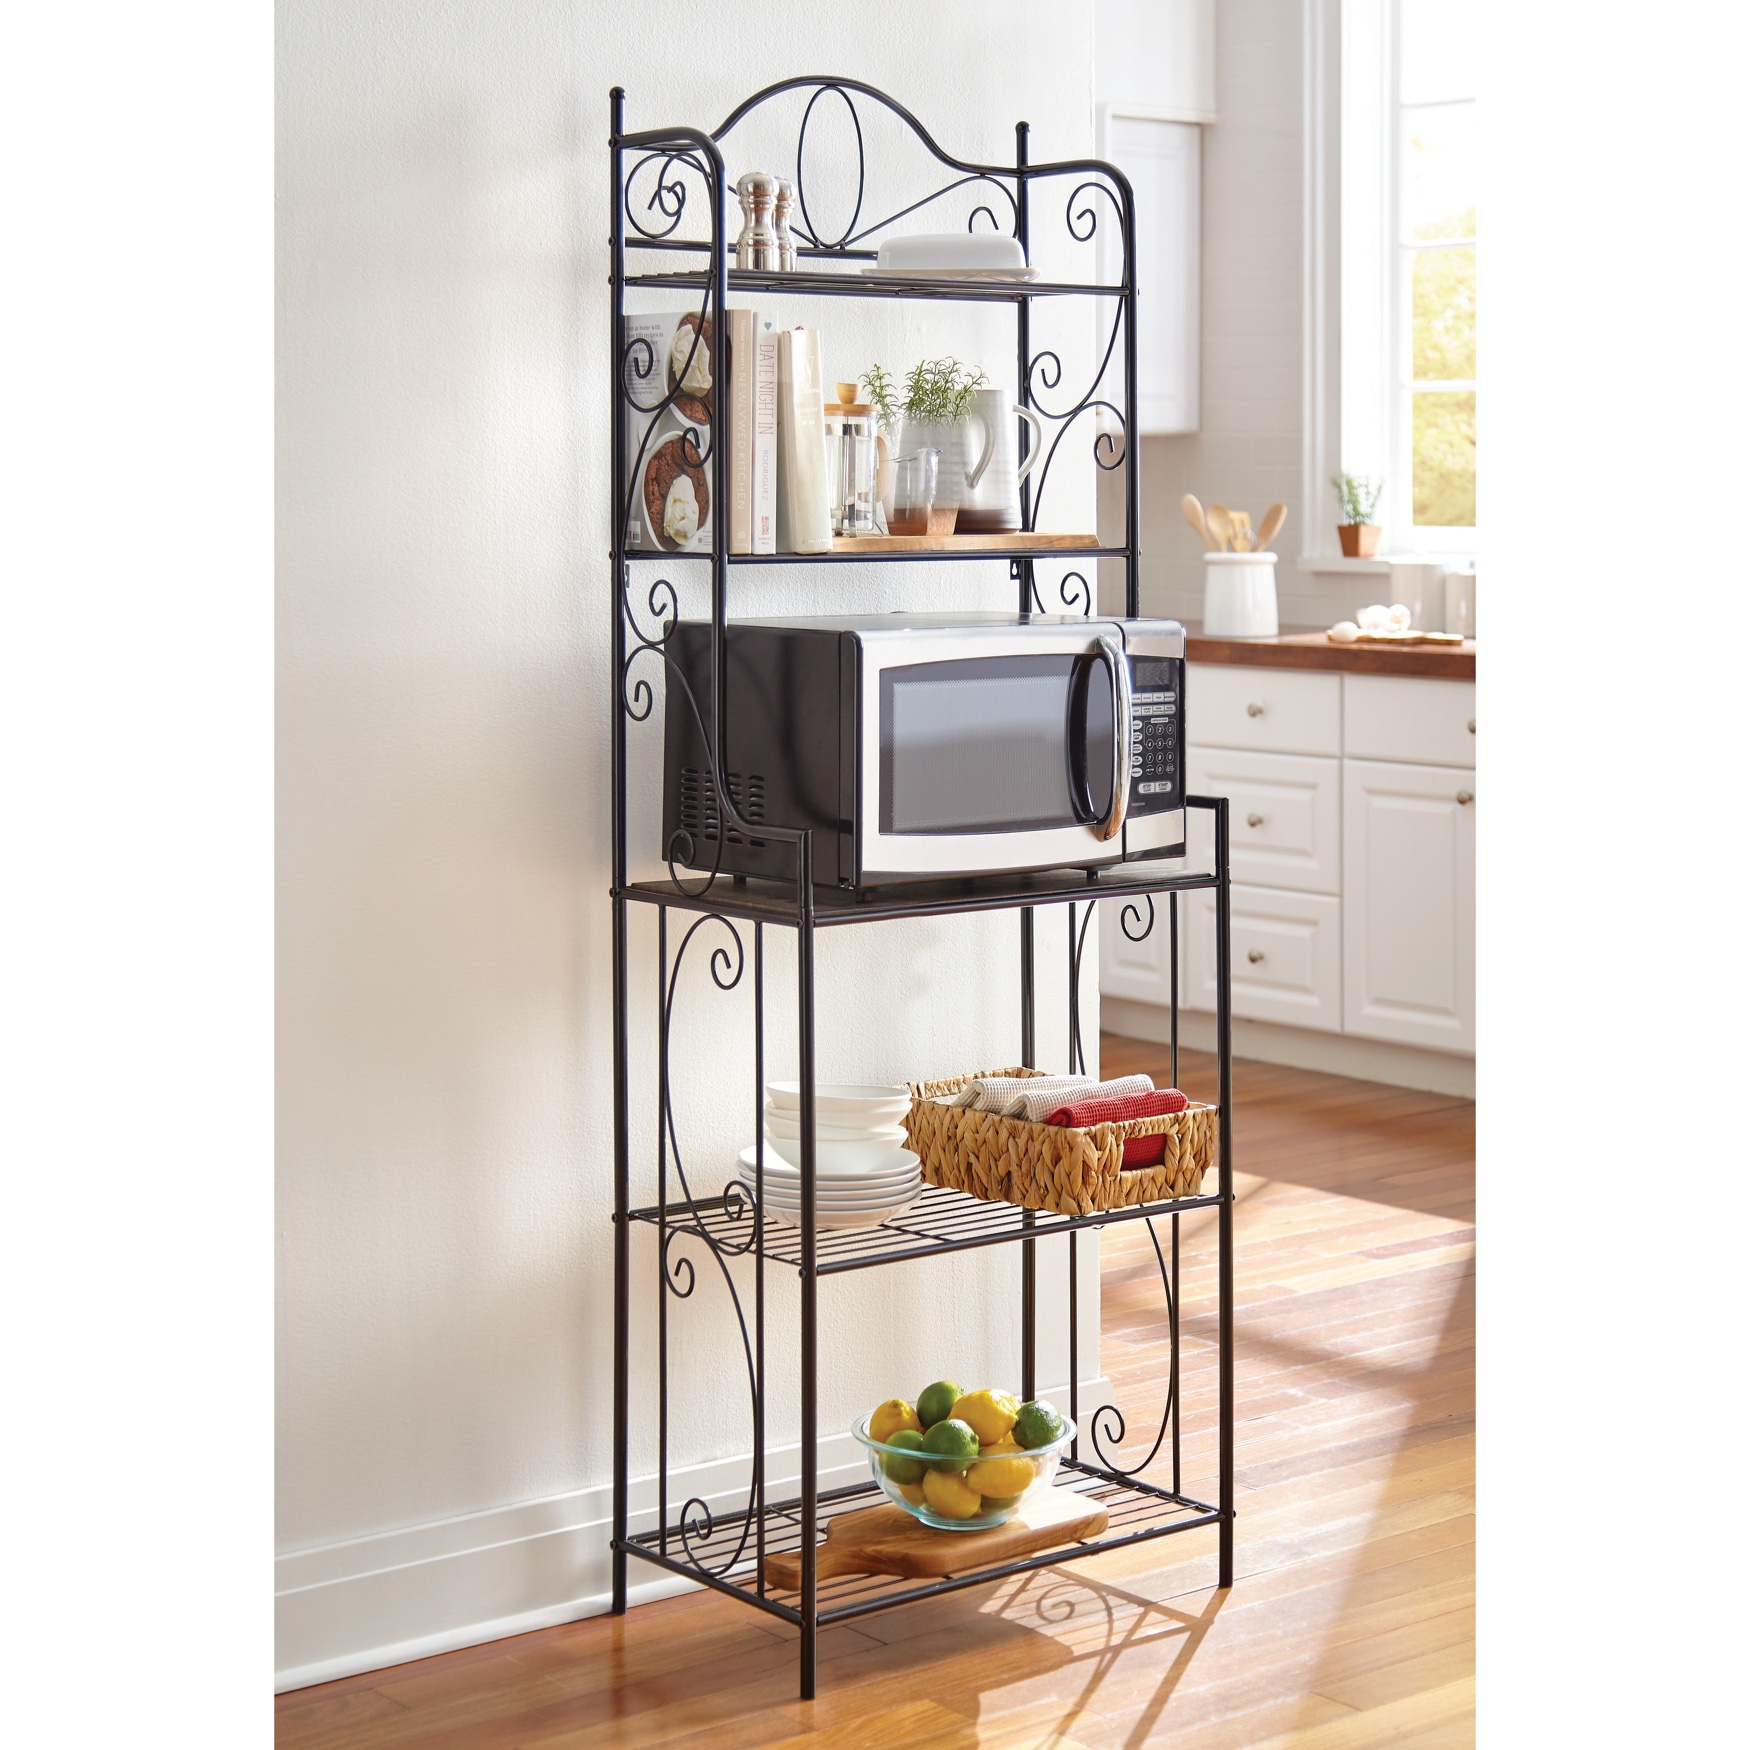 Scroll Baker's Rack, BLACK